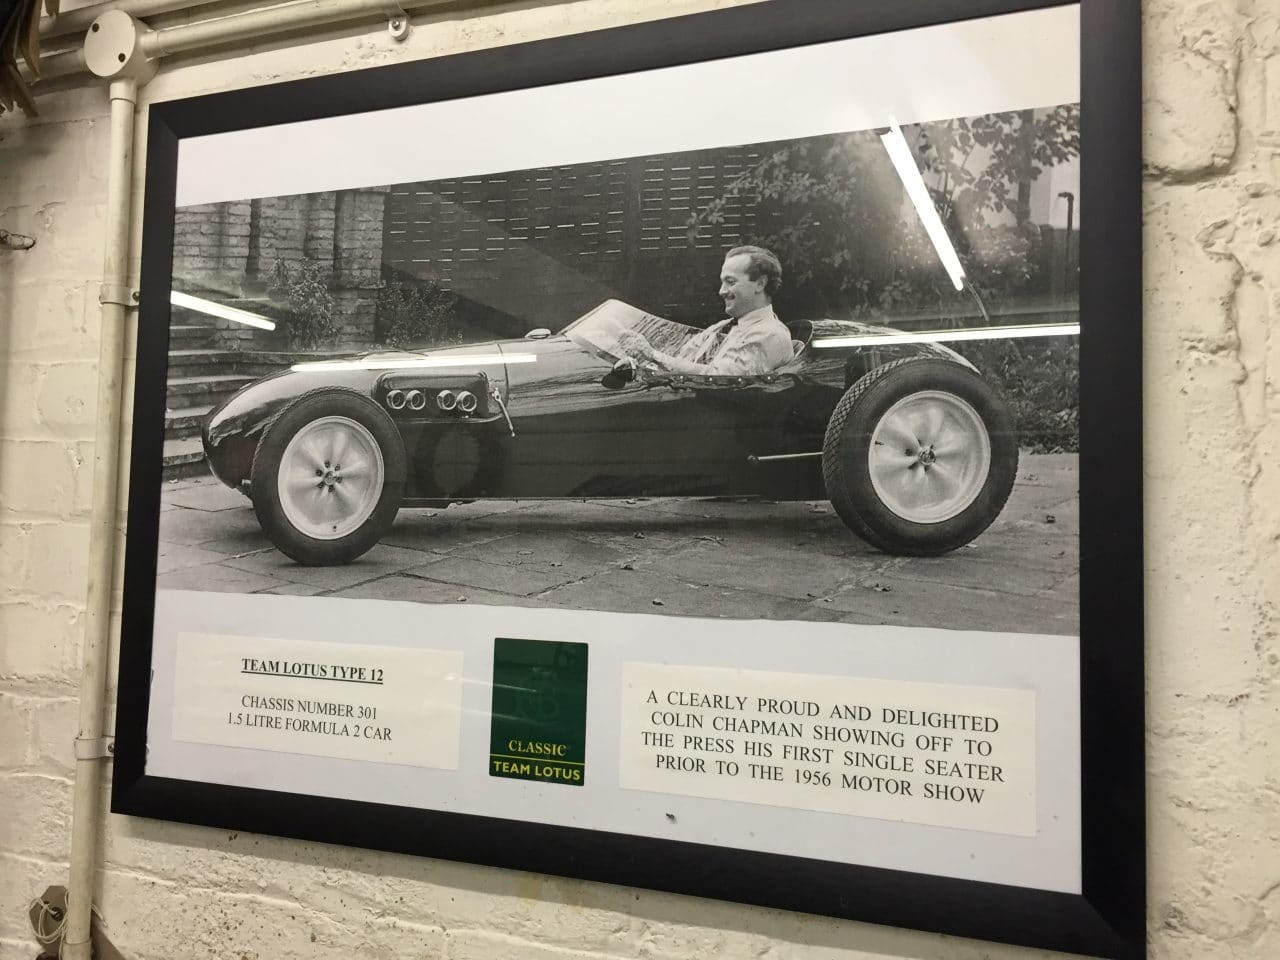 Colin Chapman Lotus type 12